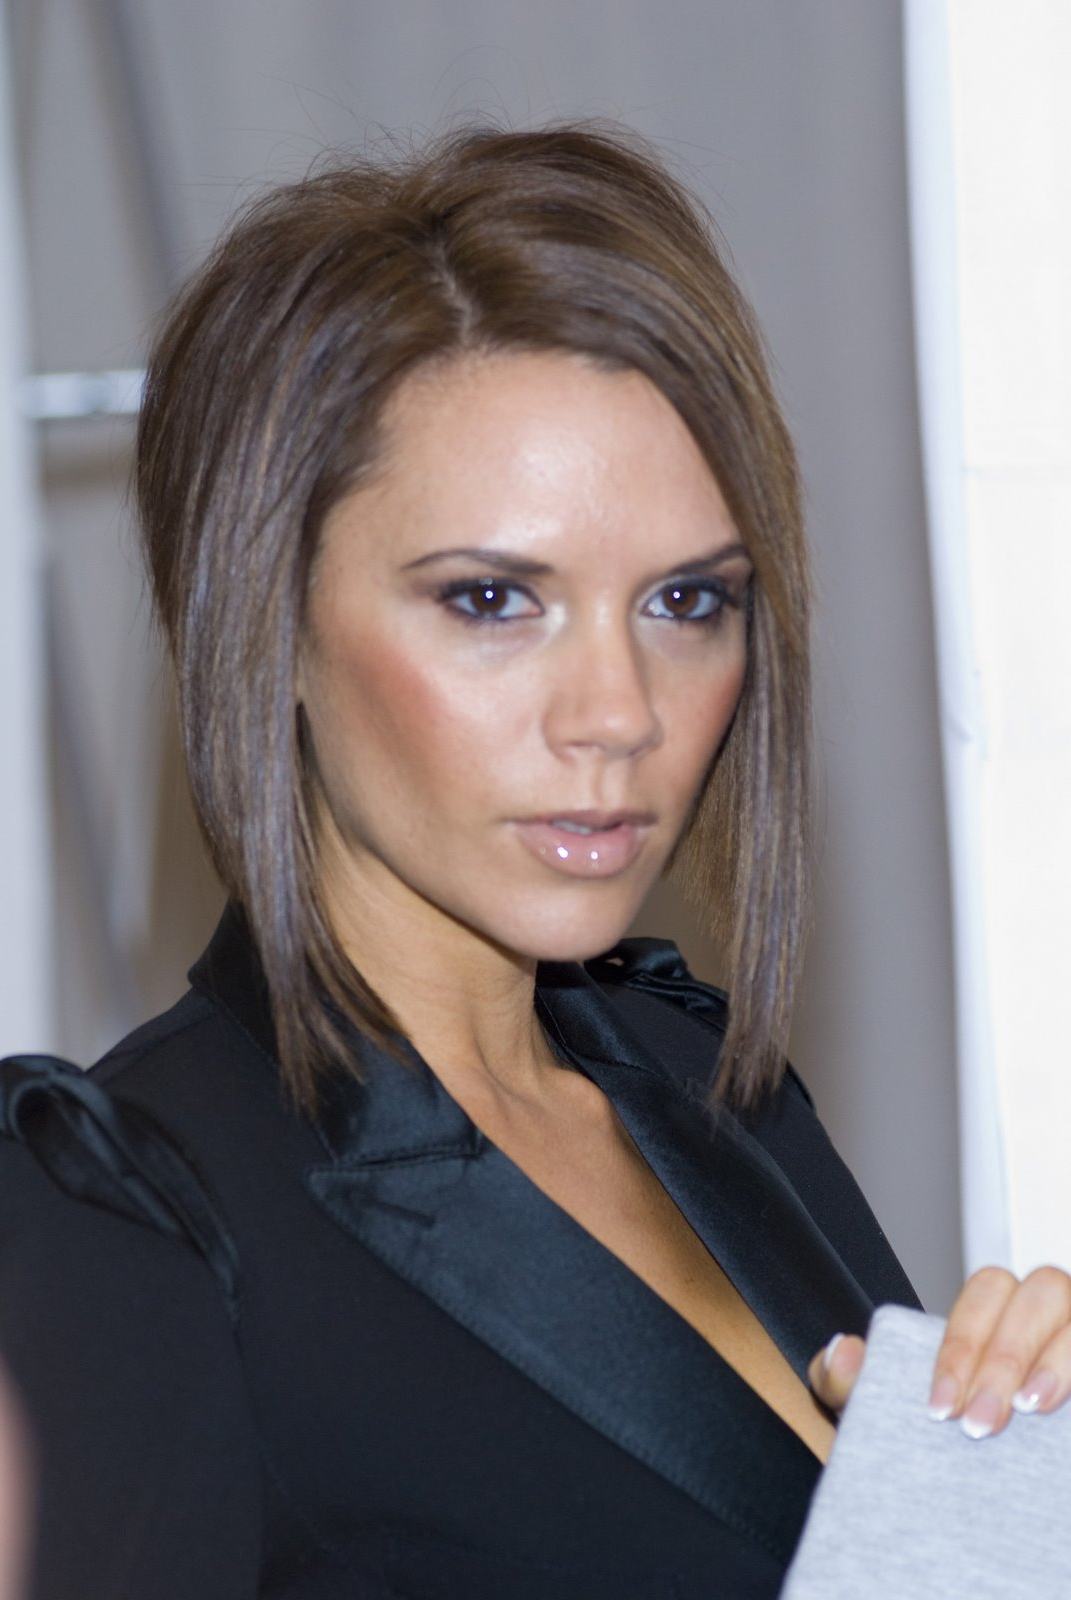 Celebrity Victoria Beckham Hairstyle Pictures – Samuel Blog Throughout Victoria Beckham Short Haircuts (View 3 of 25)